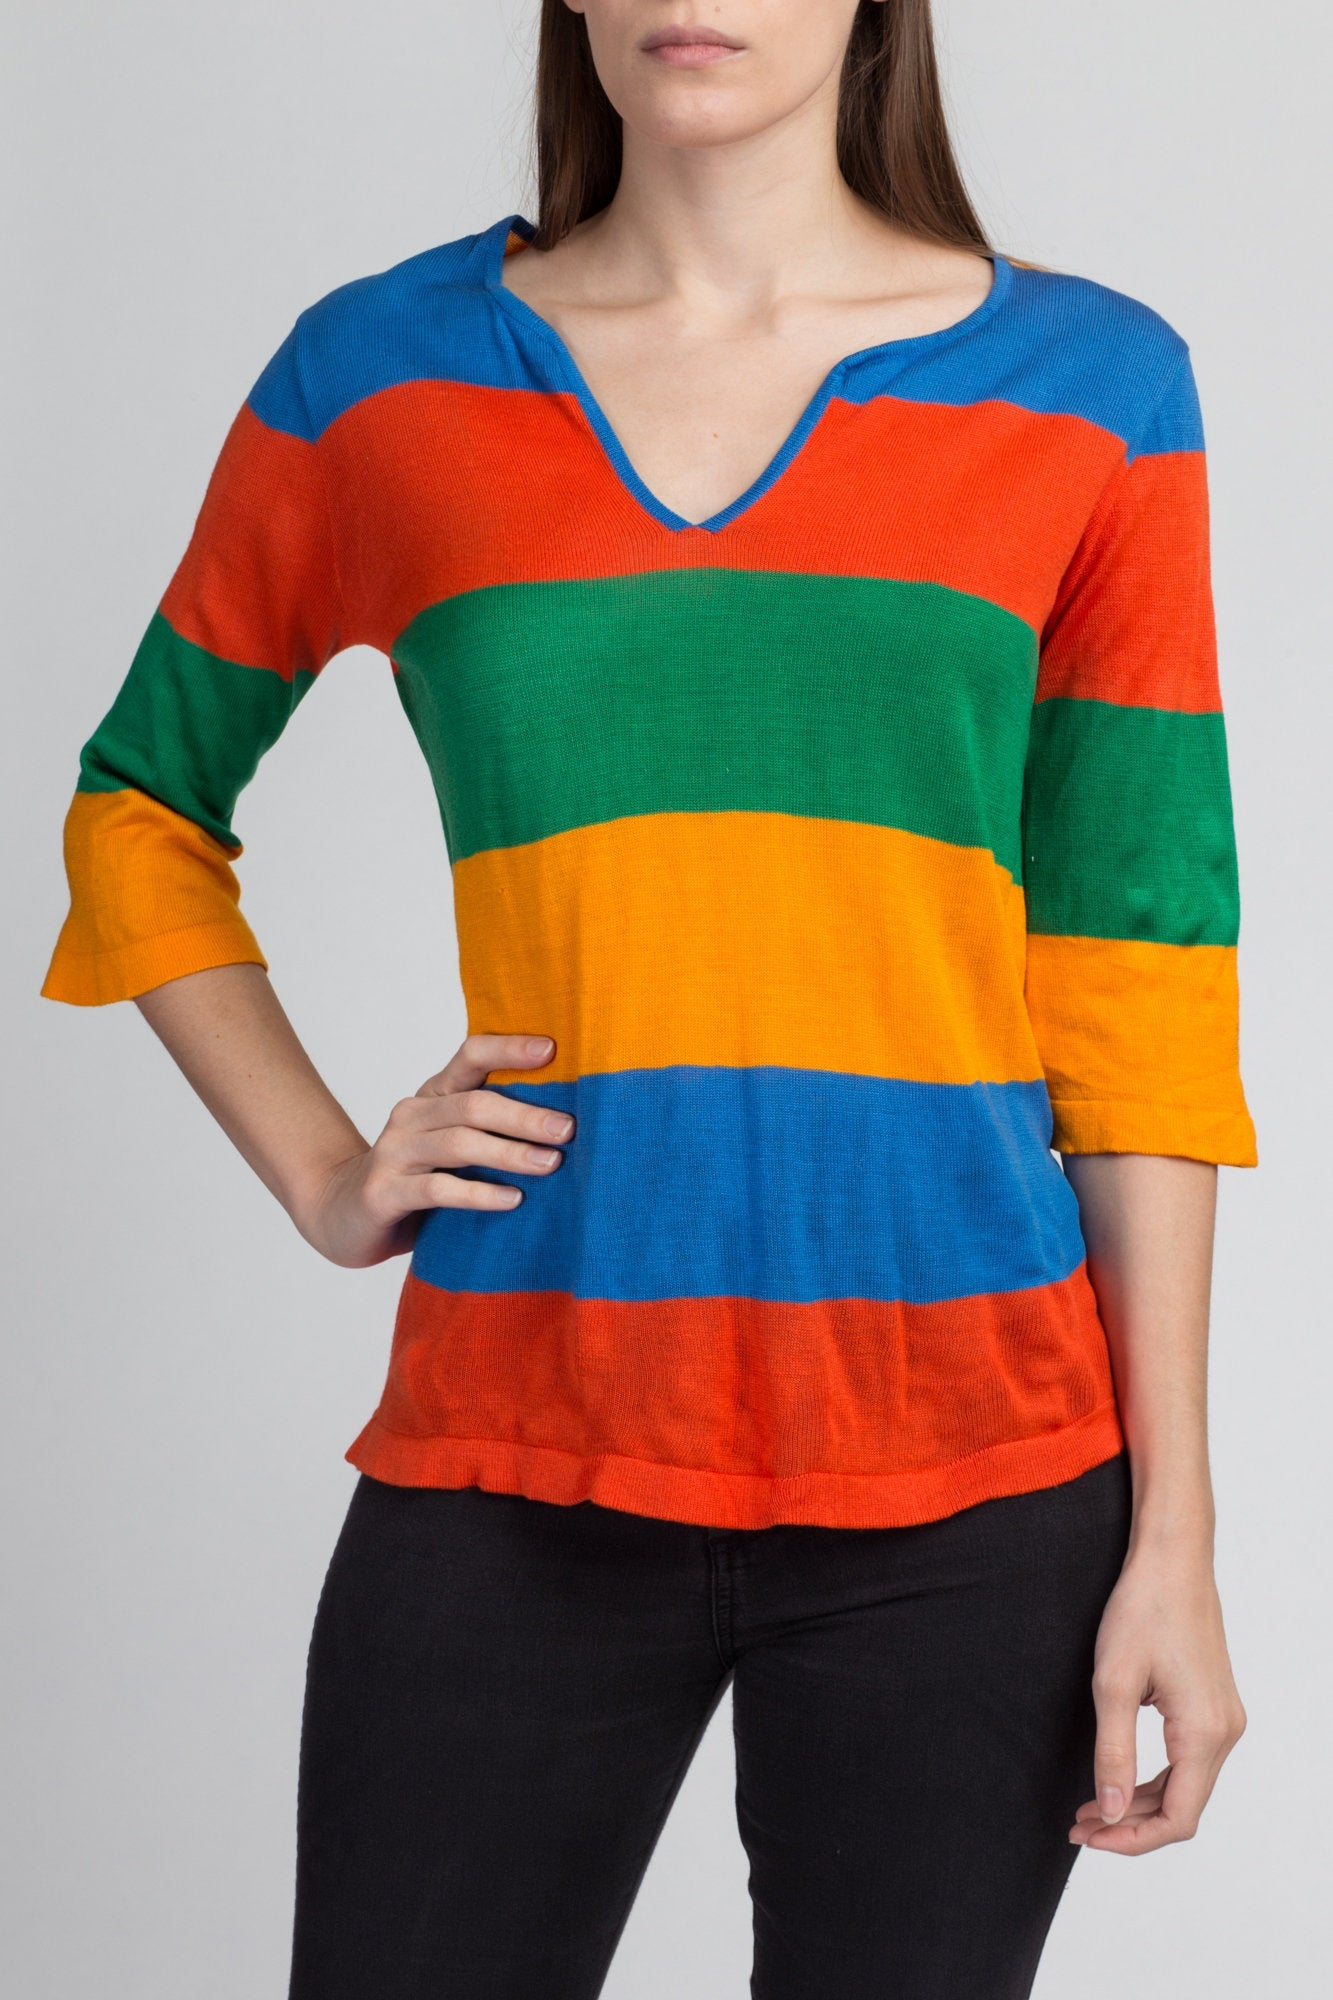 Retro 70s Striped Knit Top - Large